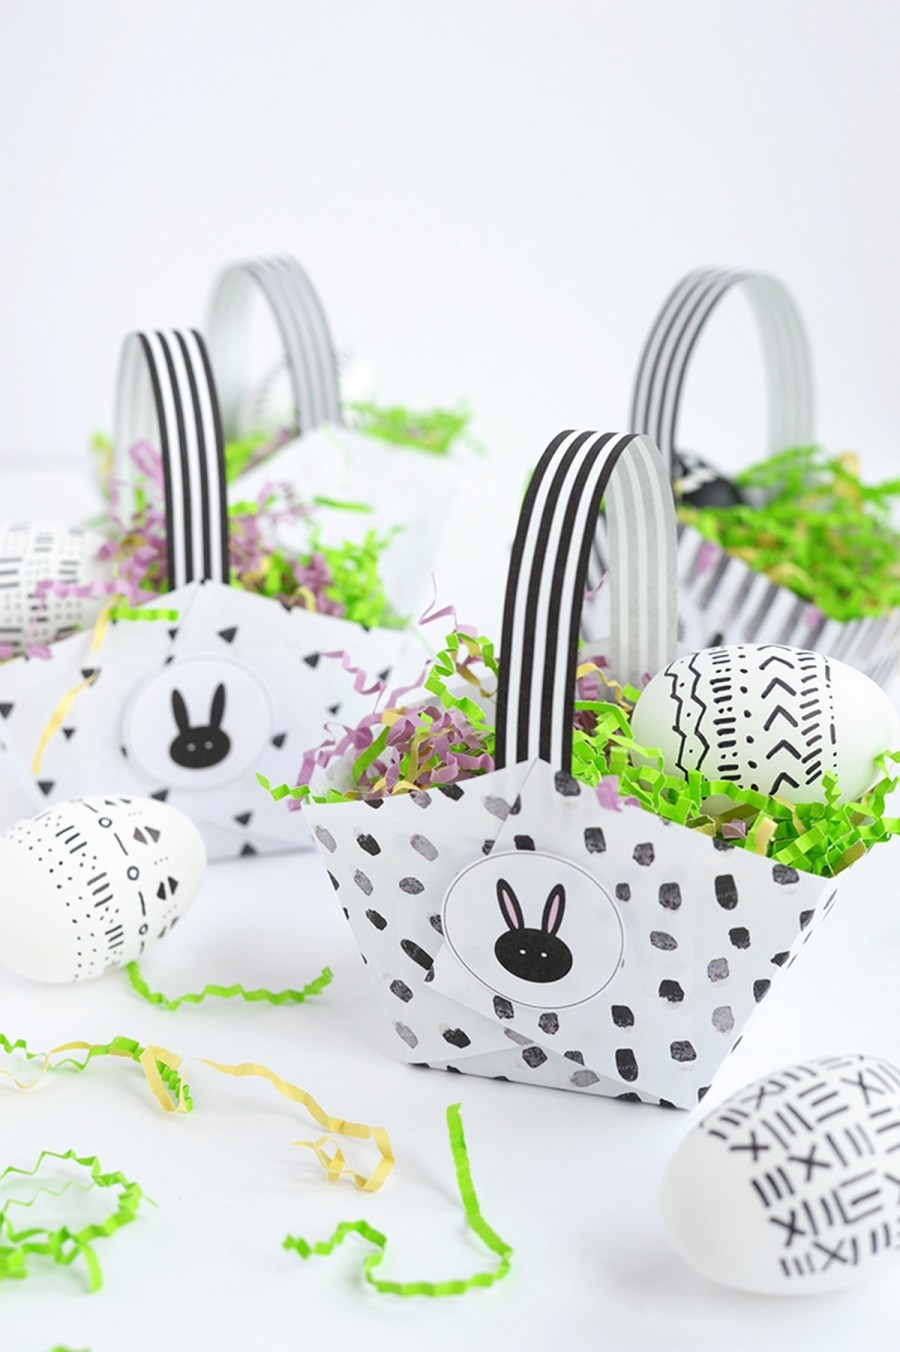 The DIY Easter basket ideas below would help get started with some of the exclusive creations.